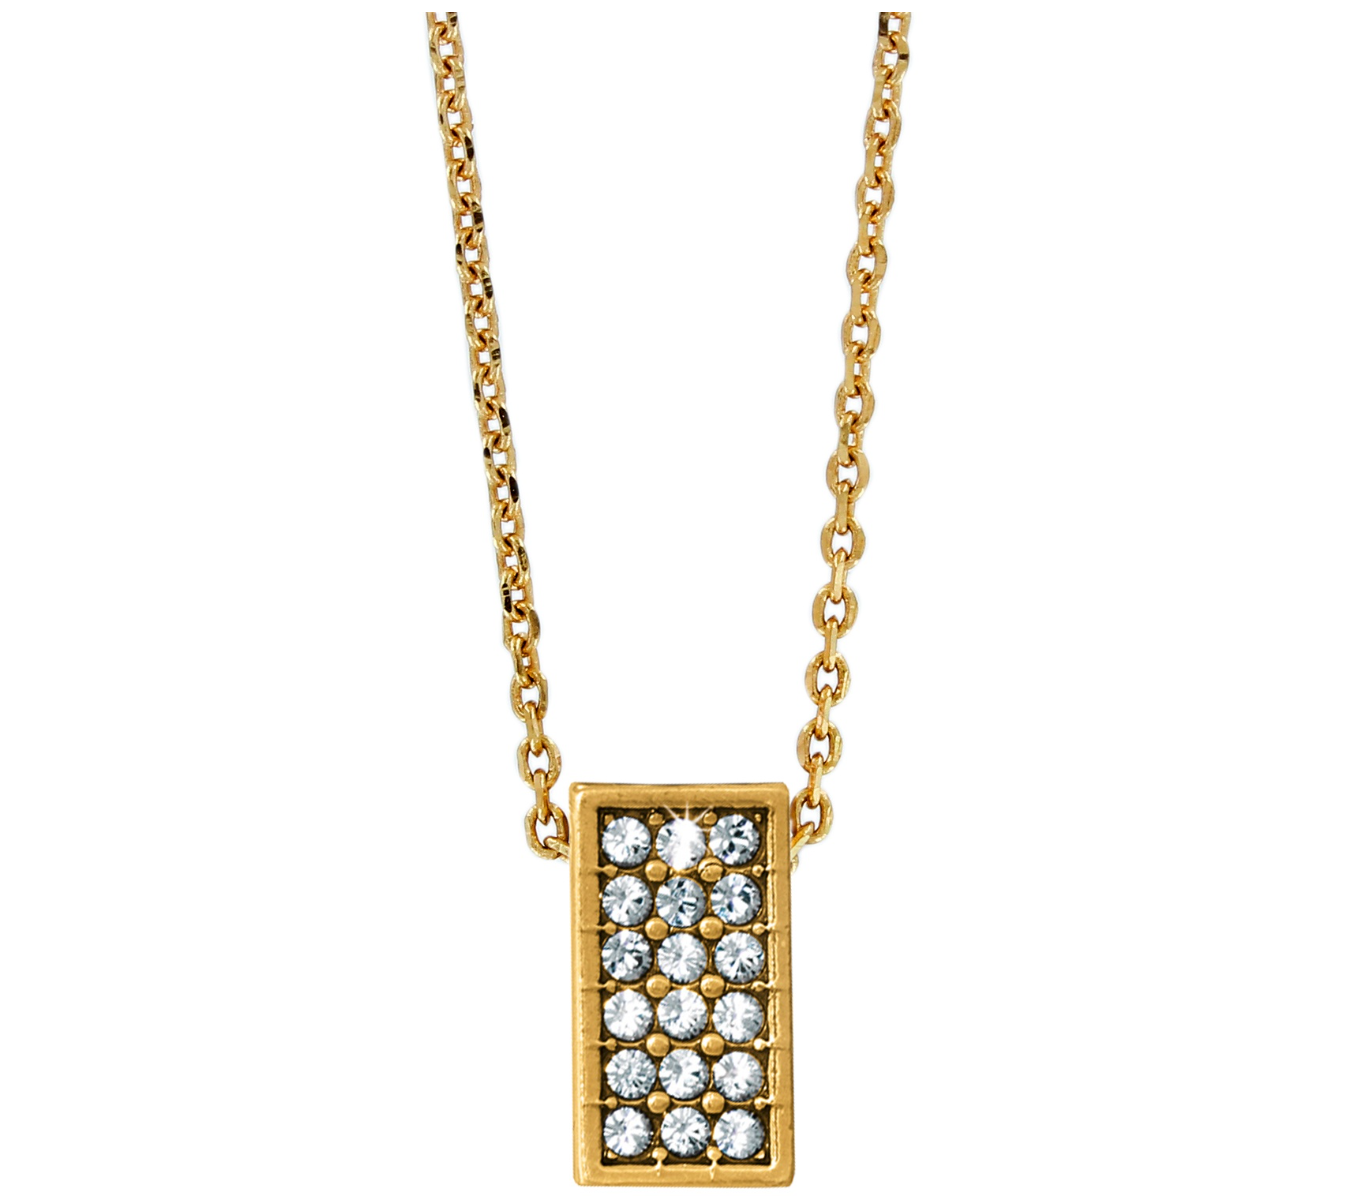 Brighton- Meridian Zenith Necklace in Gold